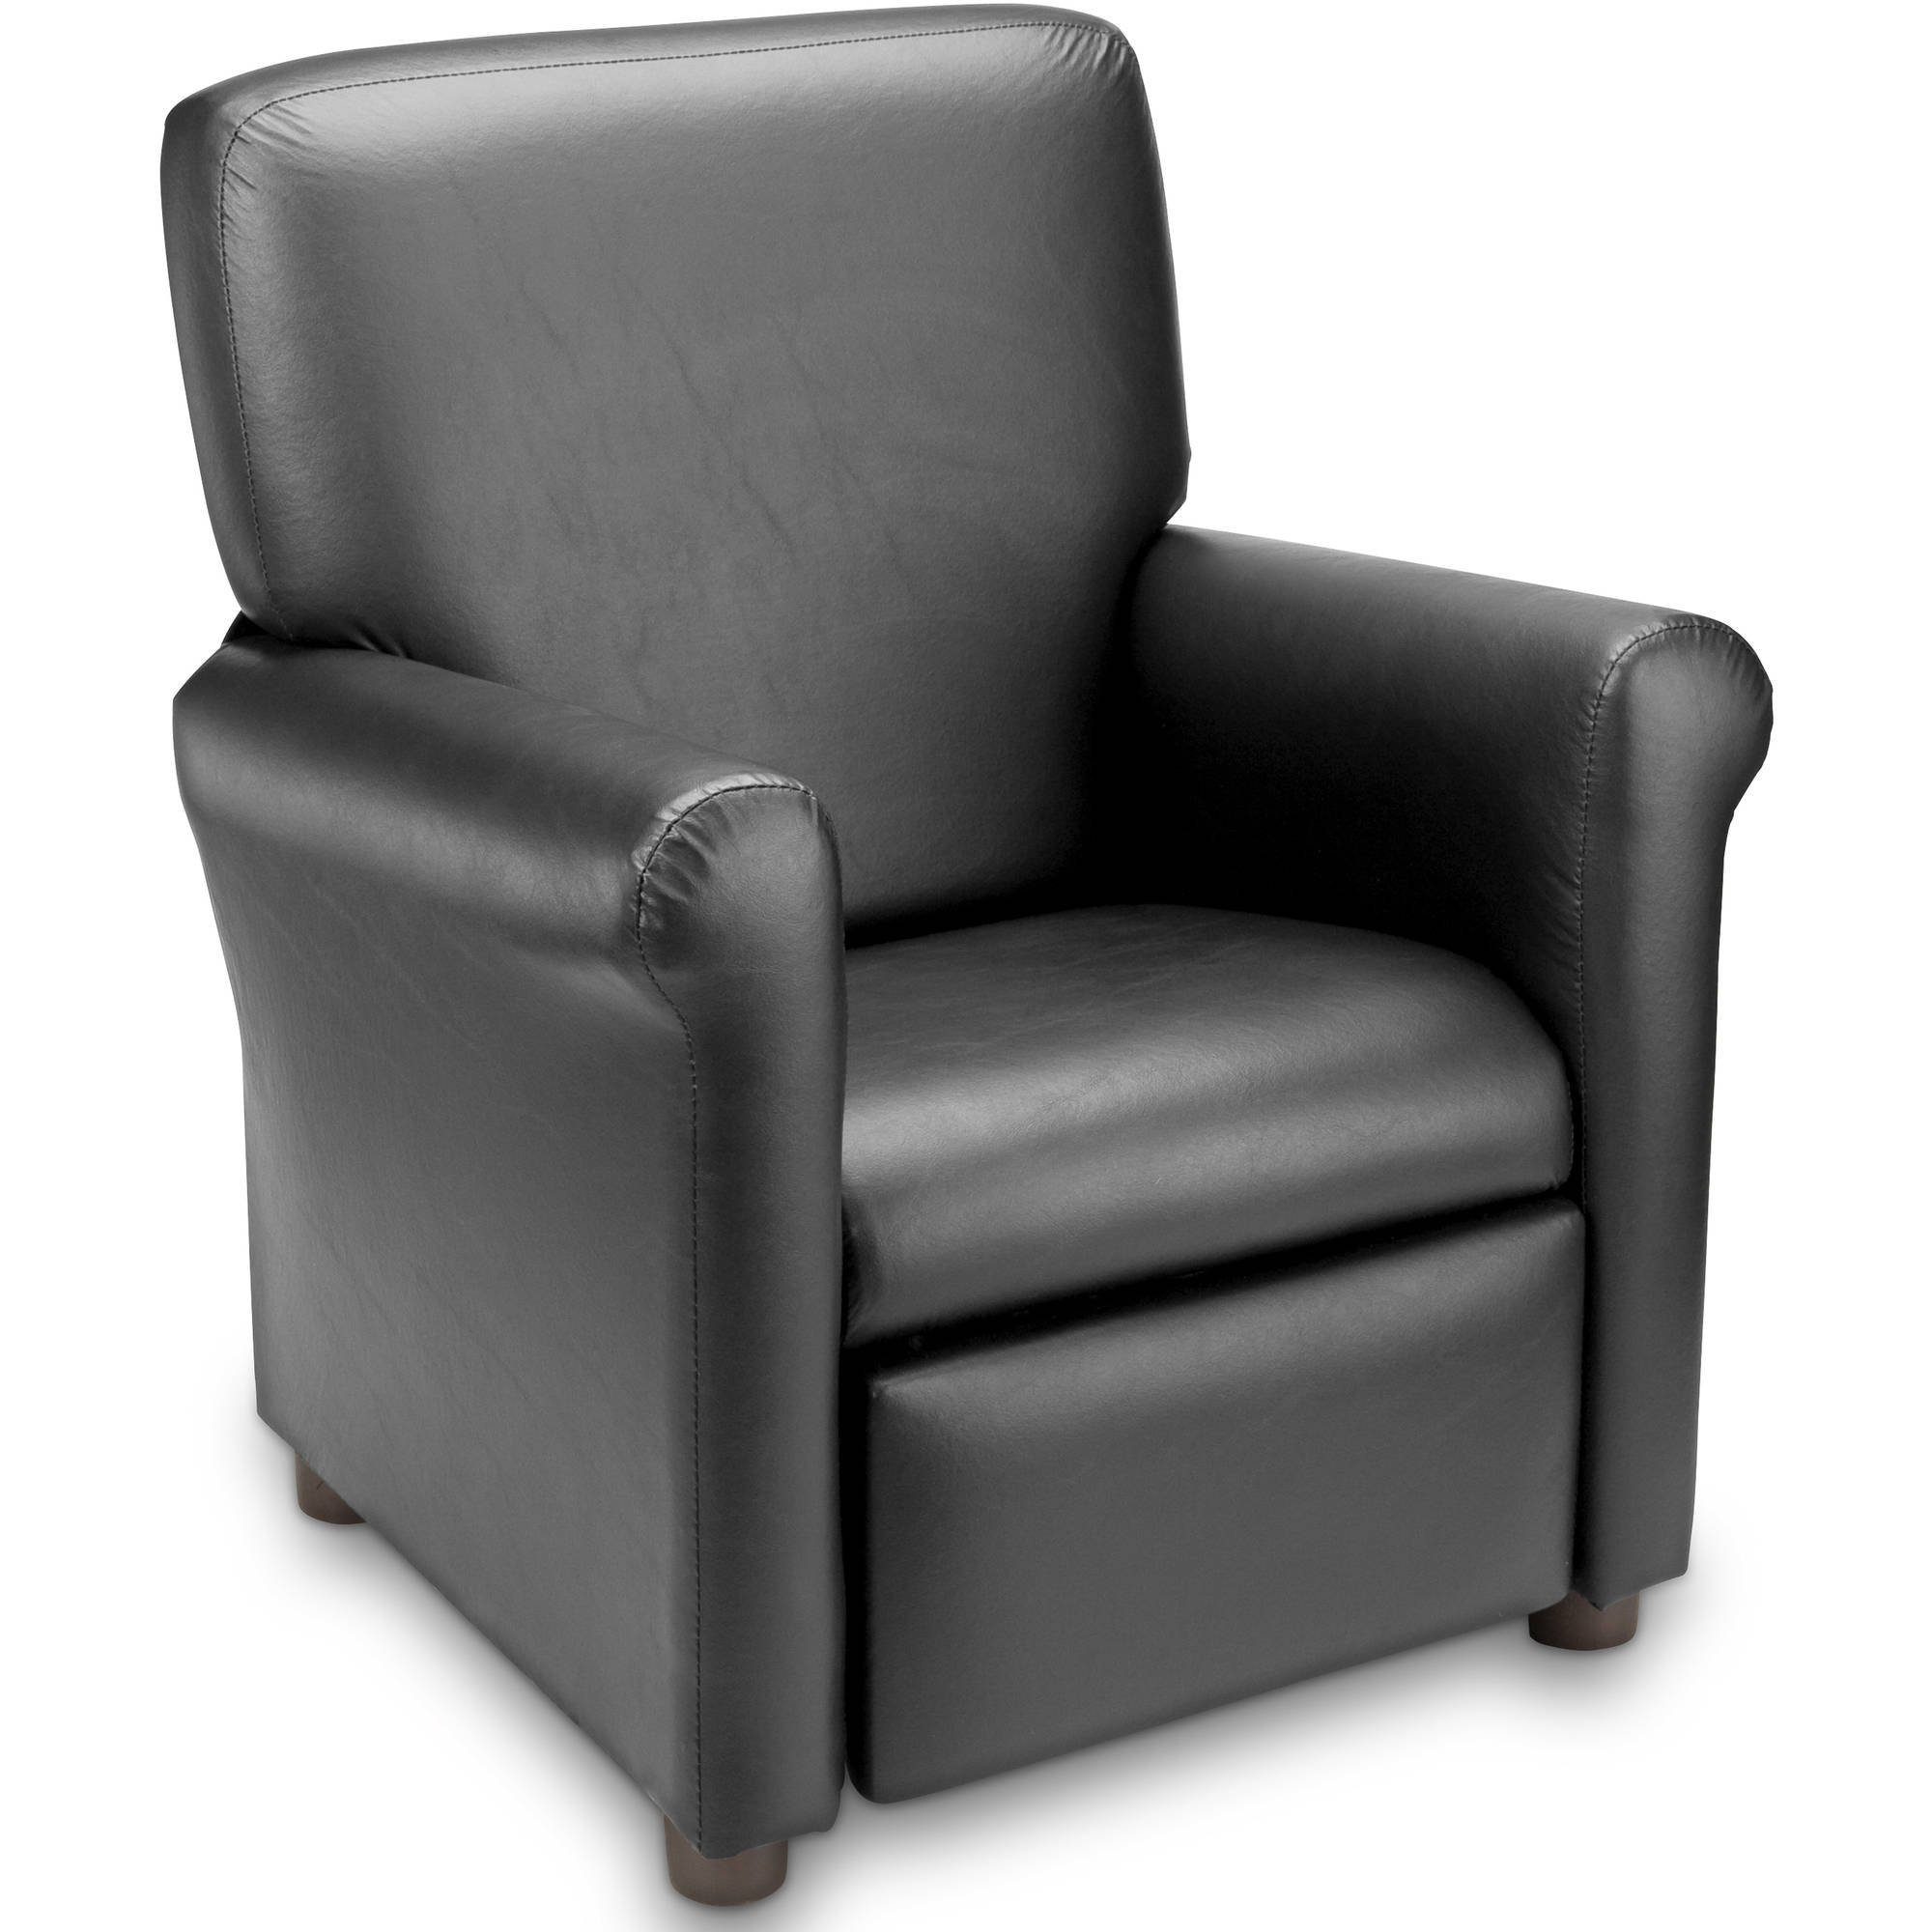 Crew Furniture Urban Child Recliner   Available In Multiple Colors   Walmart .com